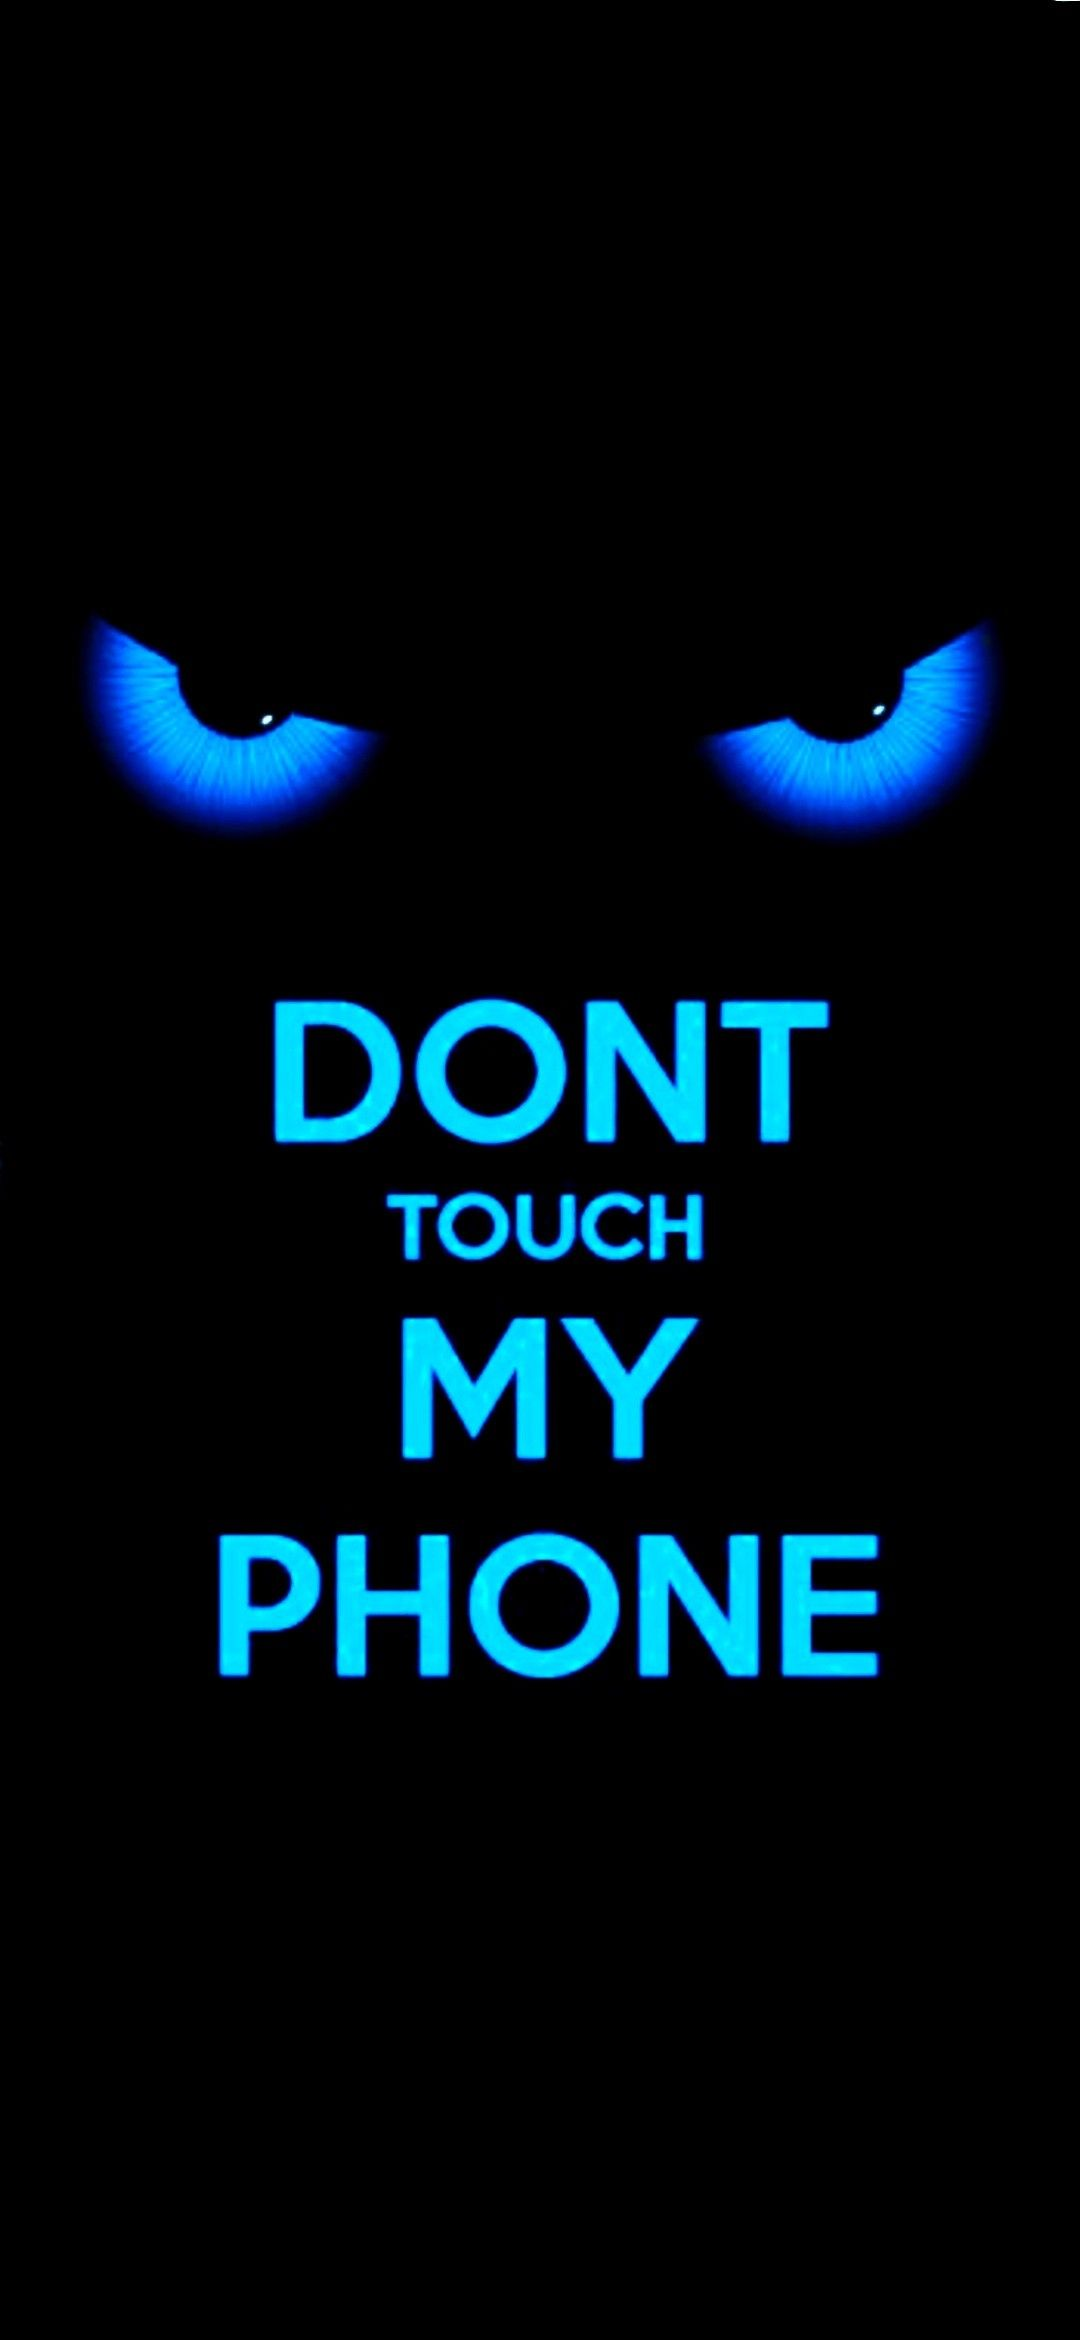 Pin On Dont Touch My Phone Wallpapers Get inspired for dope hd wallpaper for